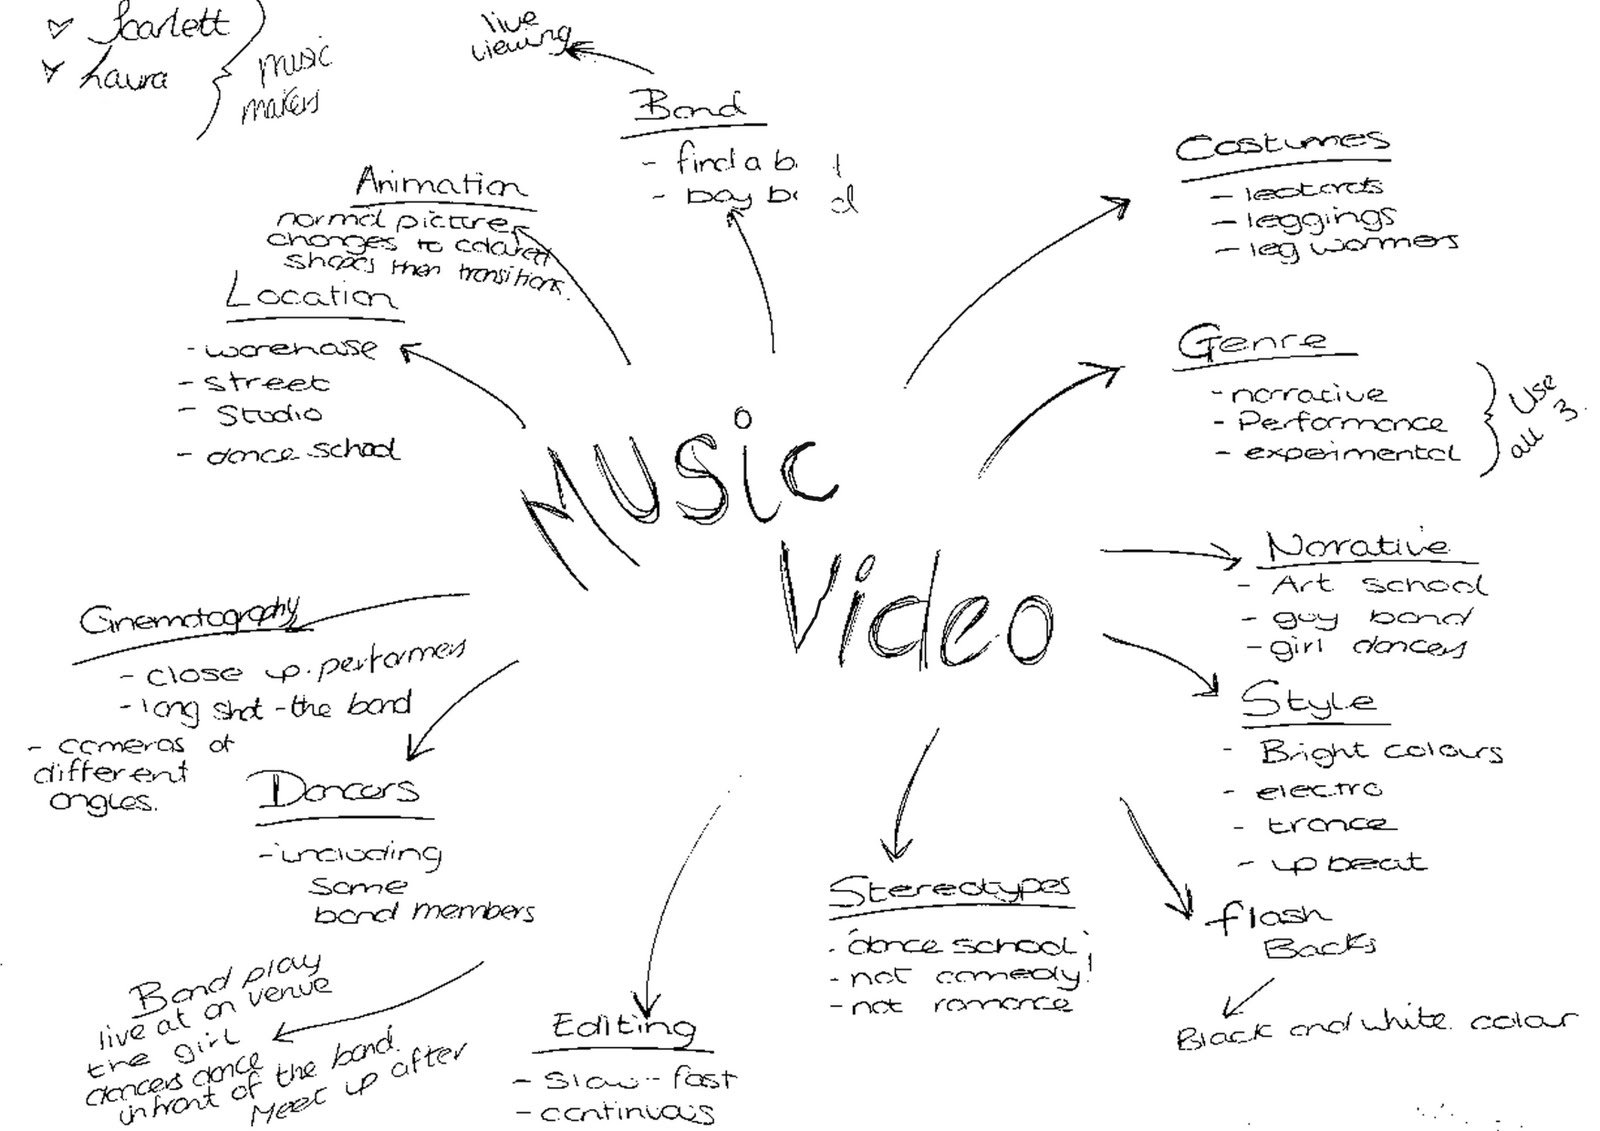 10 Great Ideas For A Music Video b2 laura henderson scarlett jepson music video is not primarily 2020